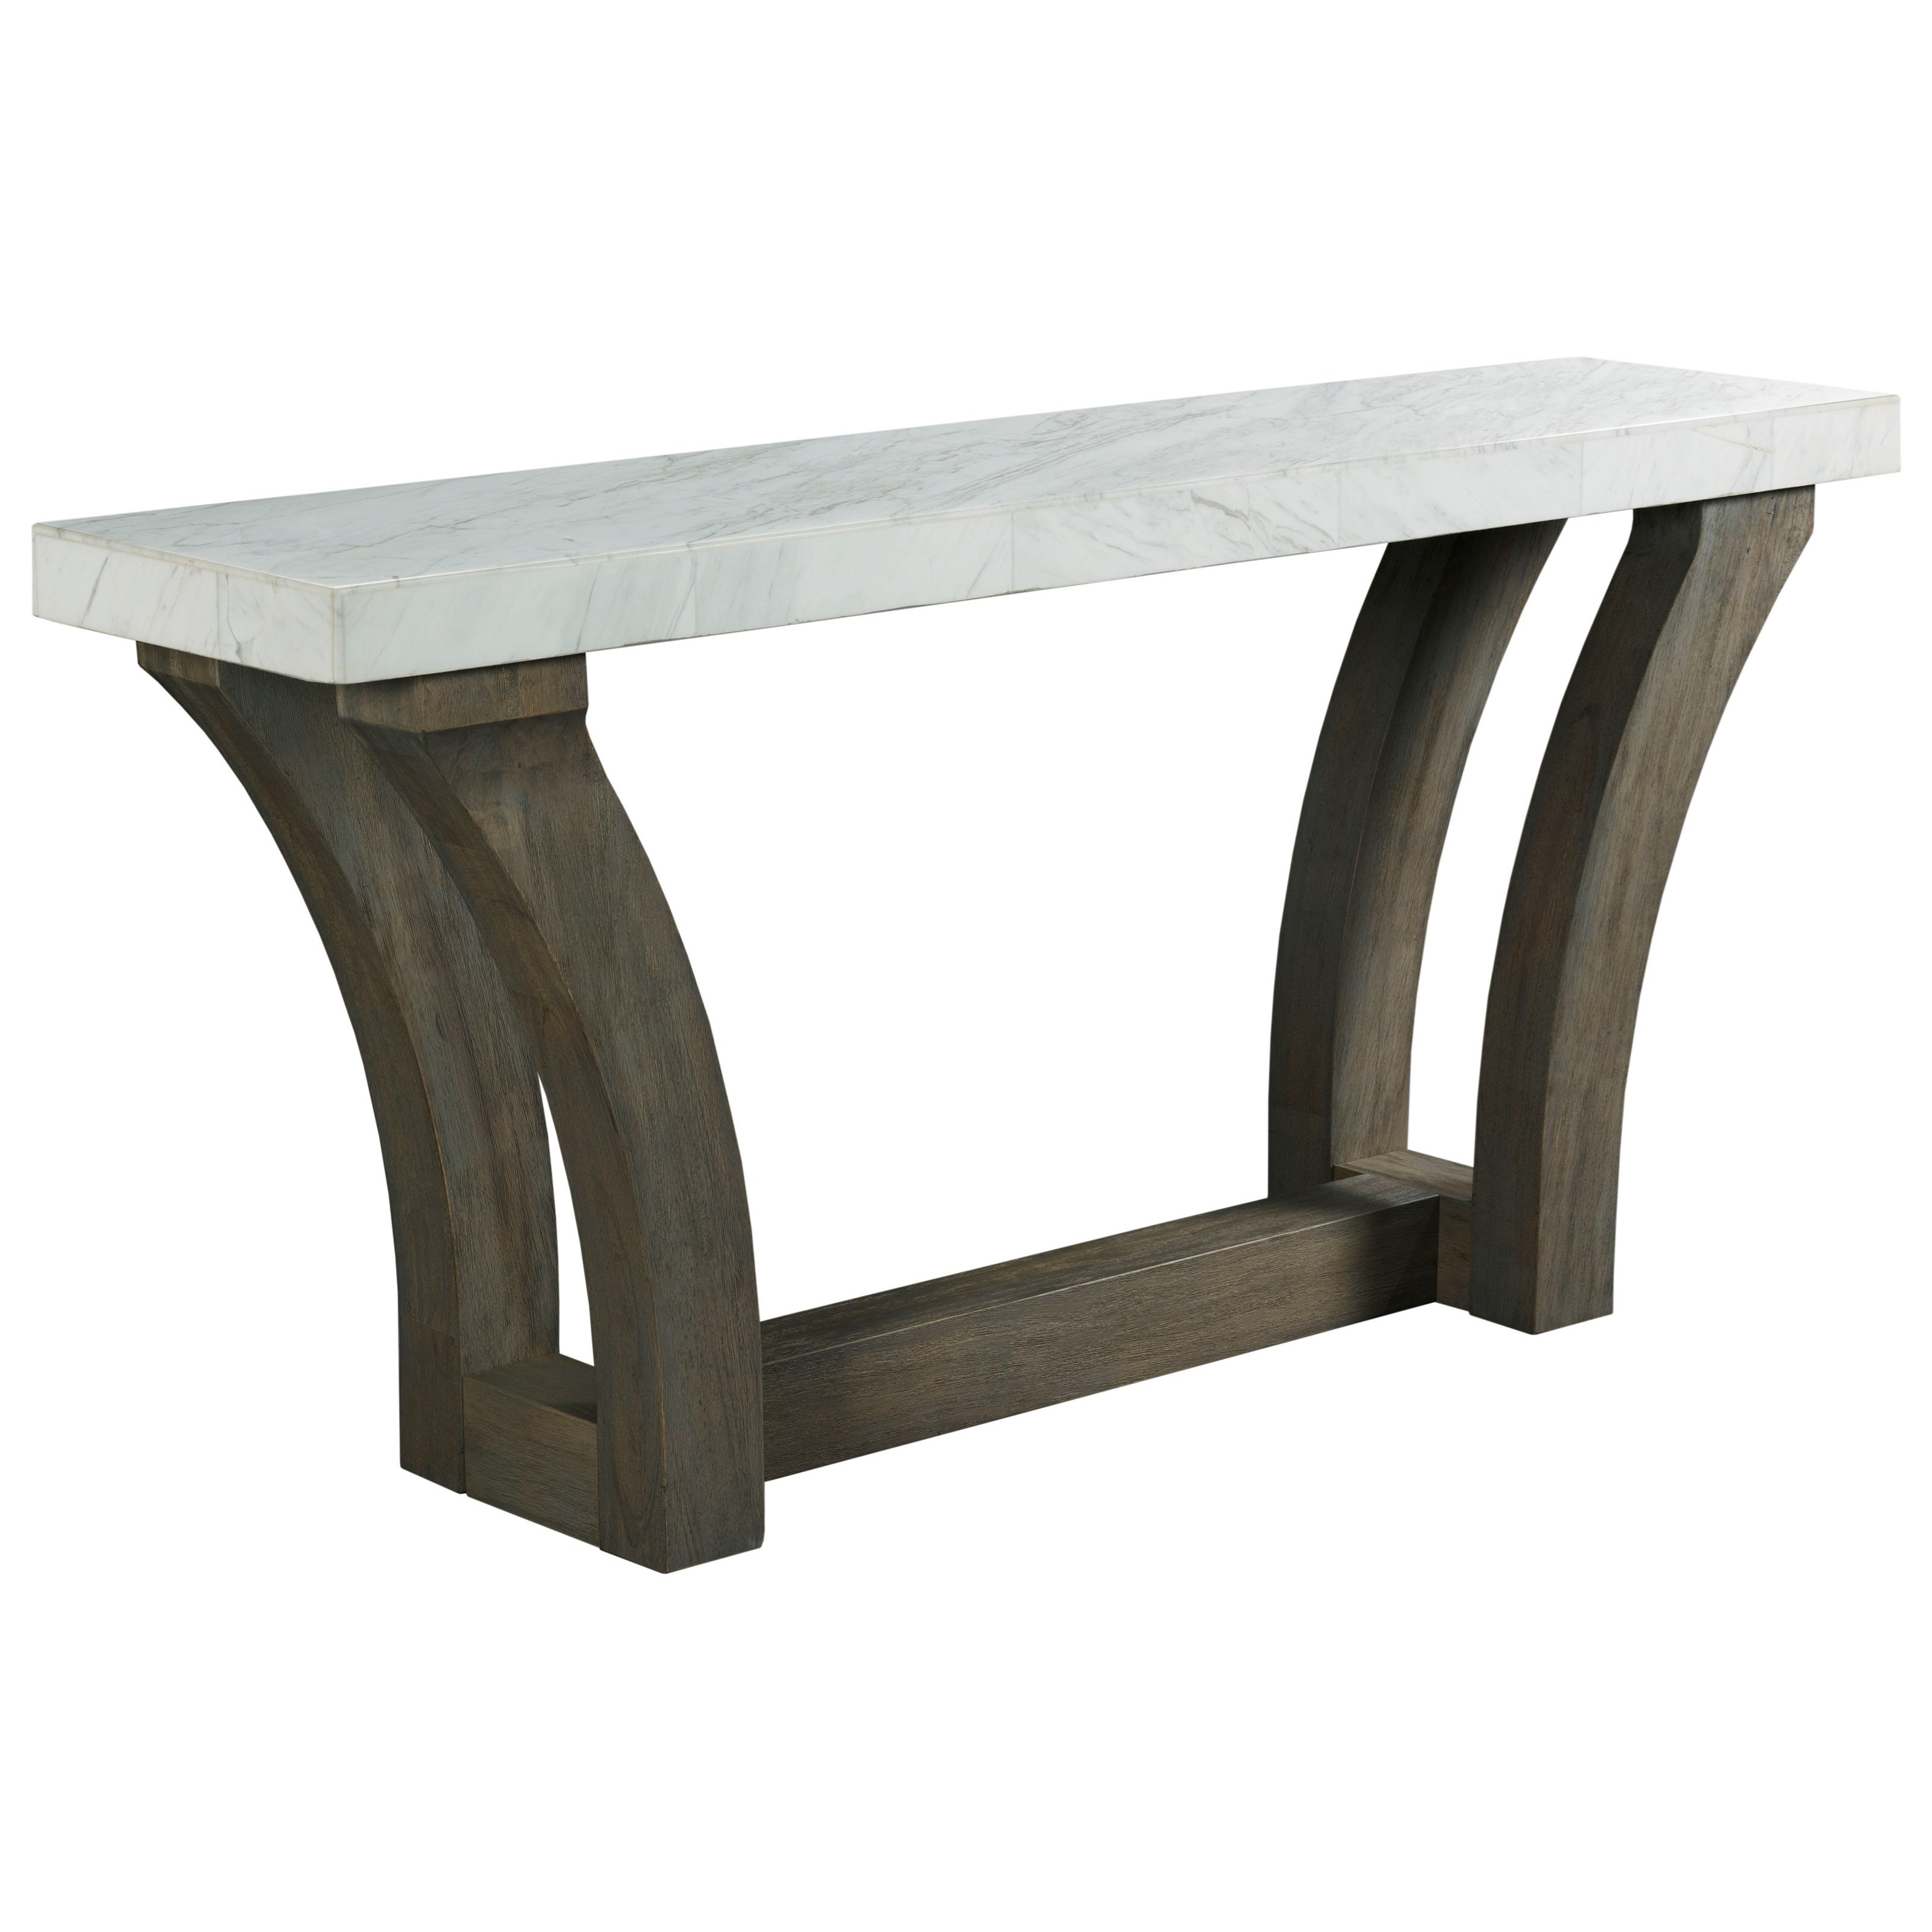 Beckham Console Table by Hammary at Jordan's Home Furnishings